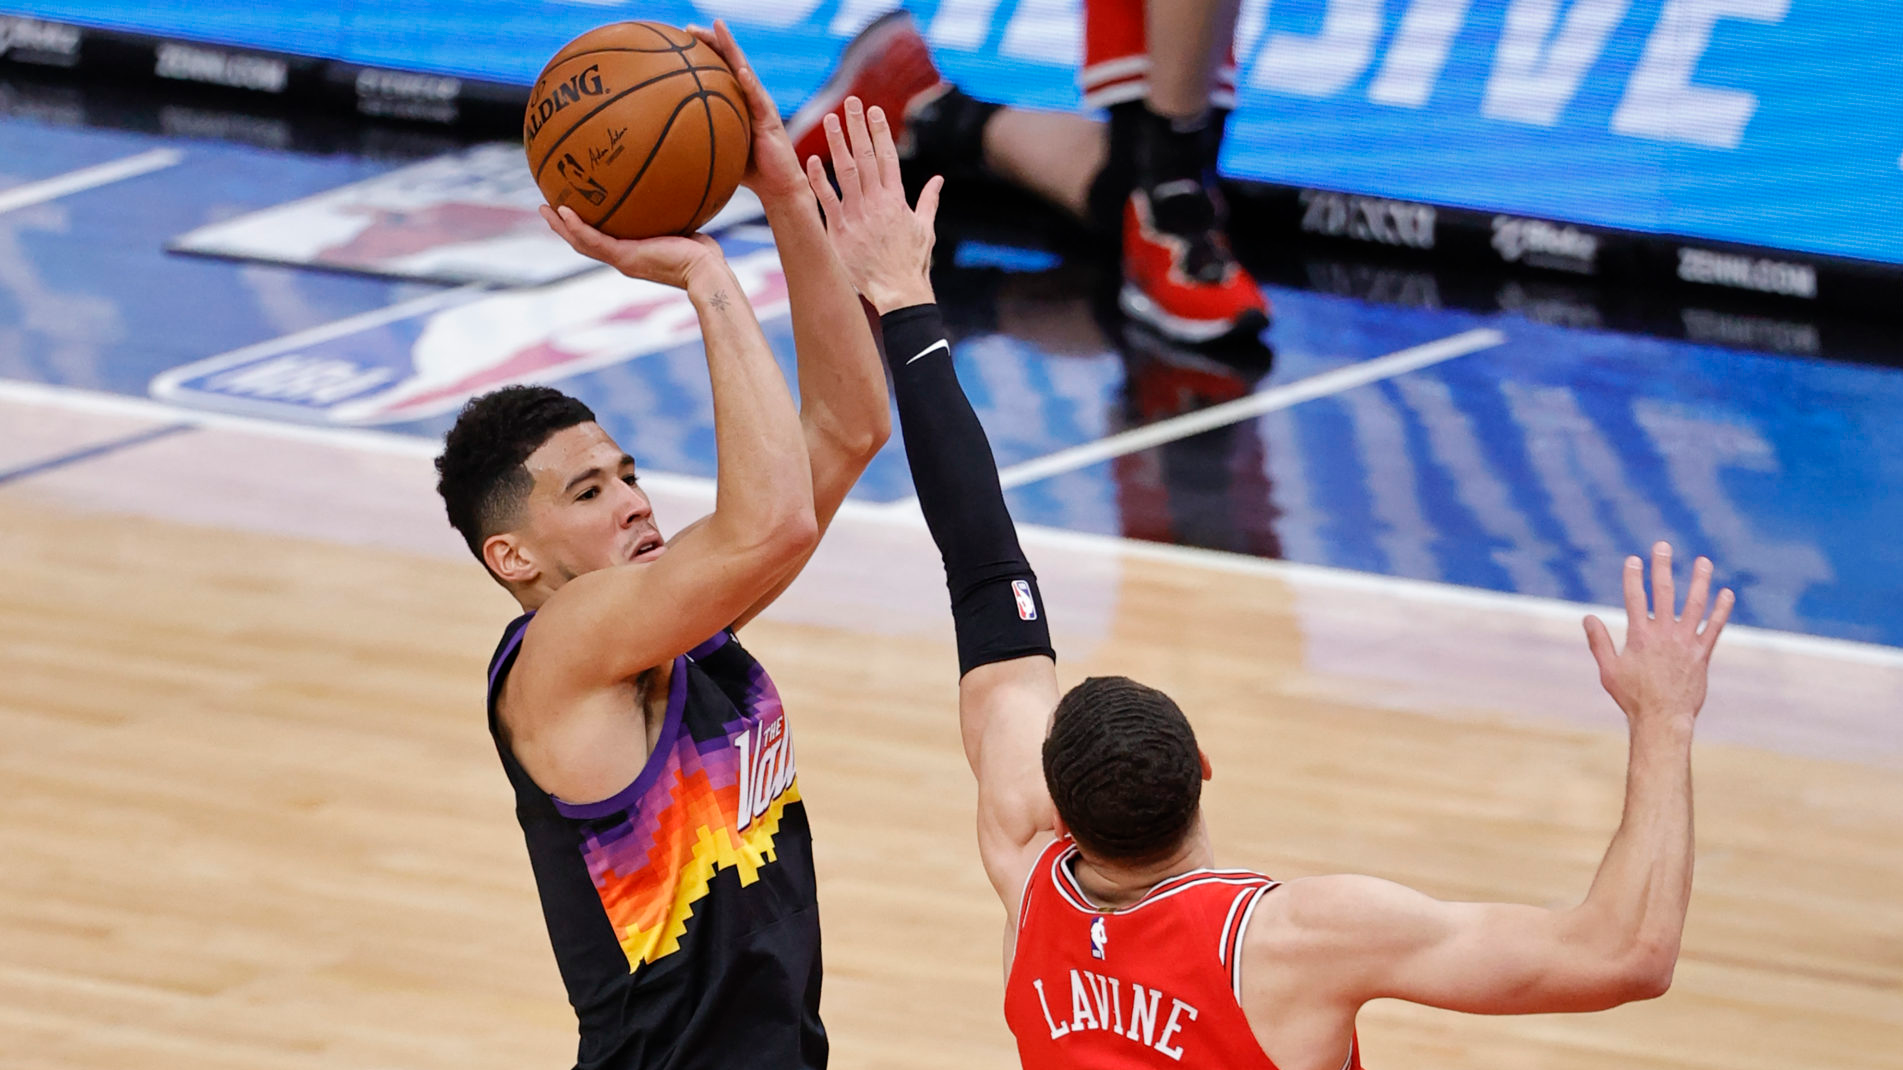 Feb 26, 2021; Chicago, Illinois, USA; Phoenix Suns guard Devin Booker (1) shoots against Chicago Bulls guard Zach LaVine (8) during the first half of an NBA game at United Center. Mandatory Credit: Kamil Krzaczynski-USA TODAY Sports